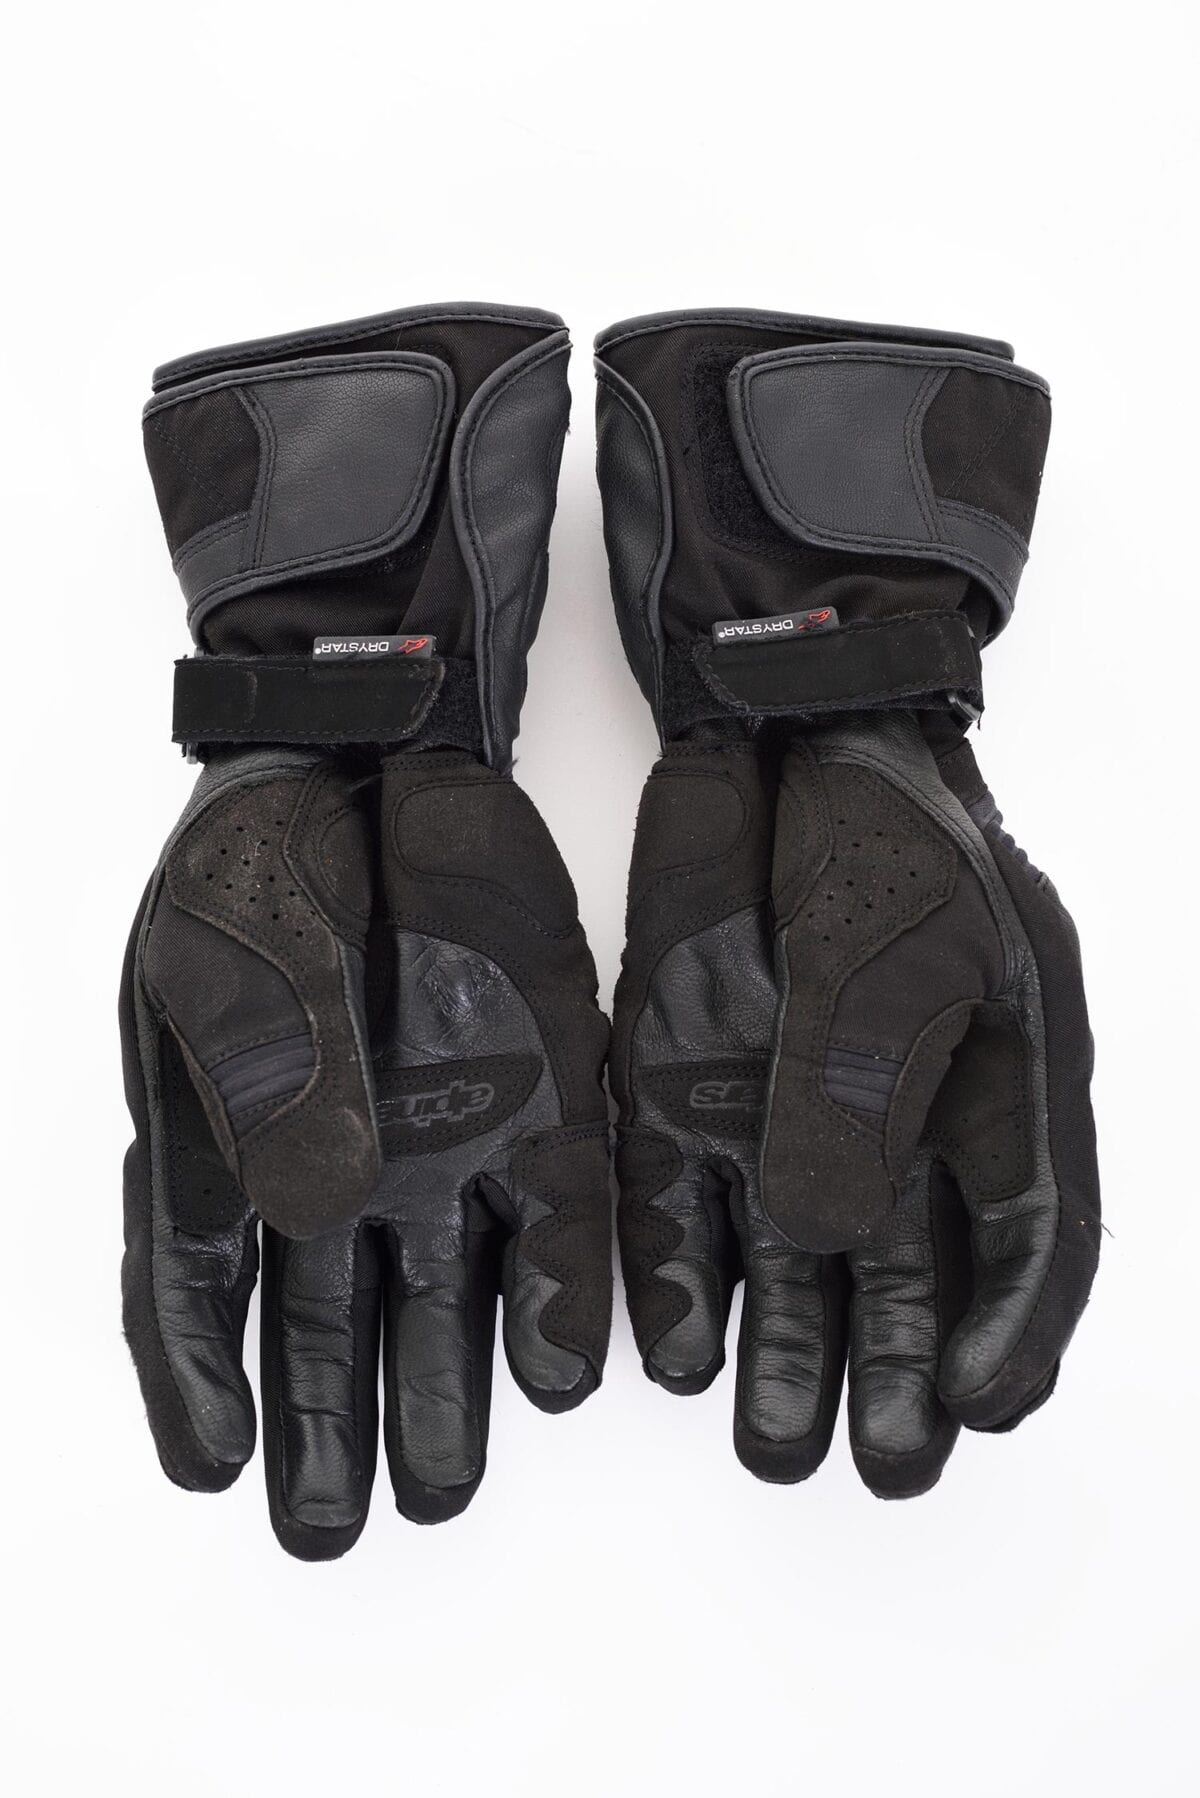 107_Alpinestars-Drystar-gloves_005